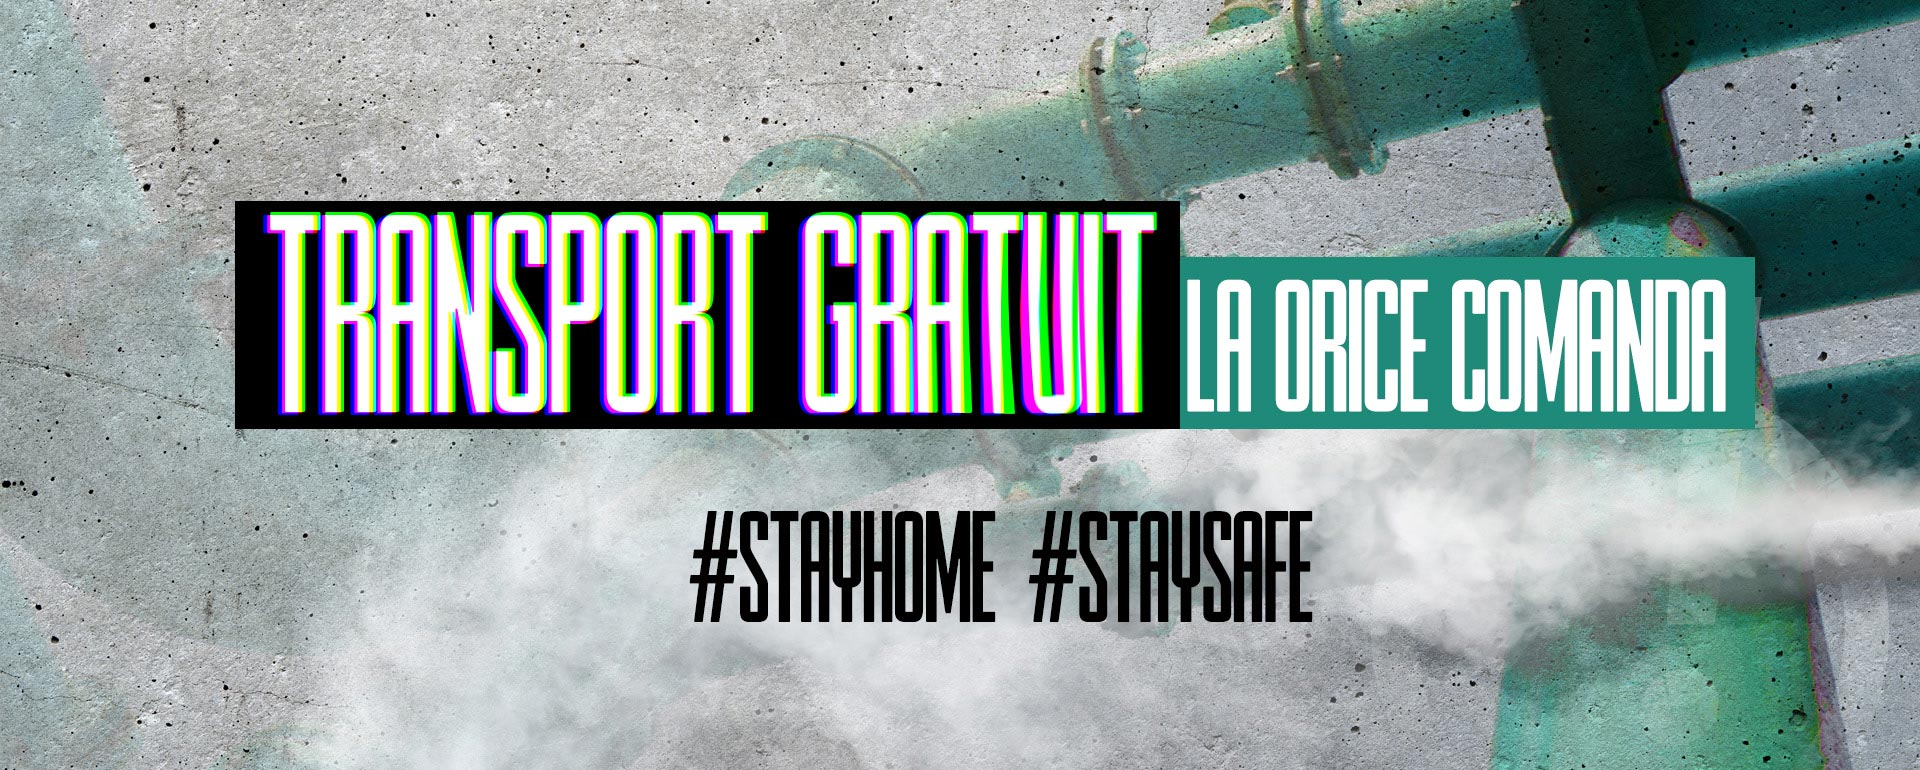 Transport Gratuit - #stayhome #staysafe